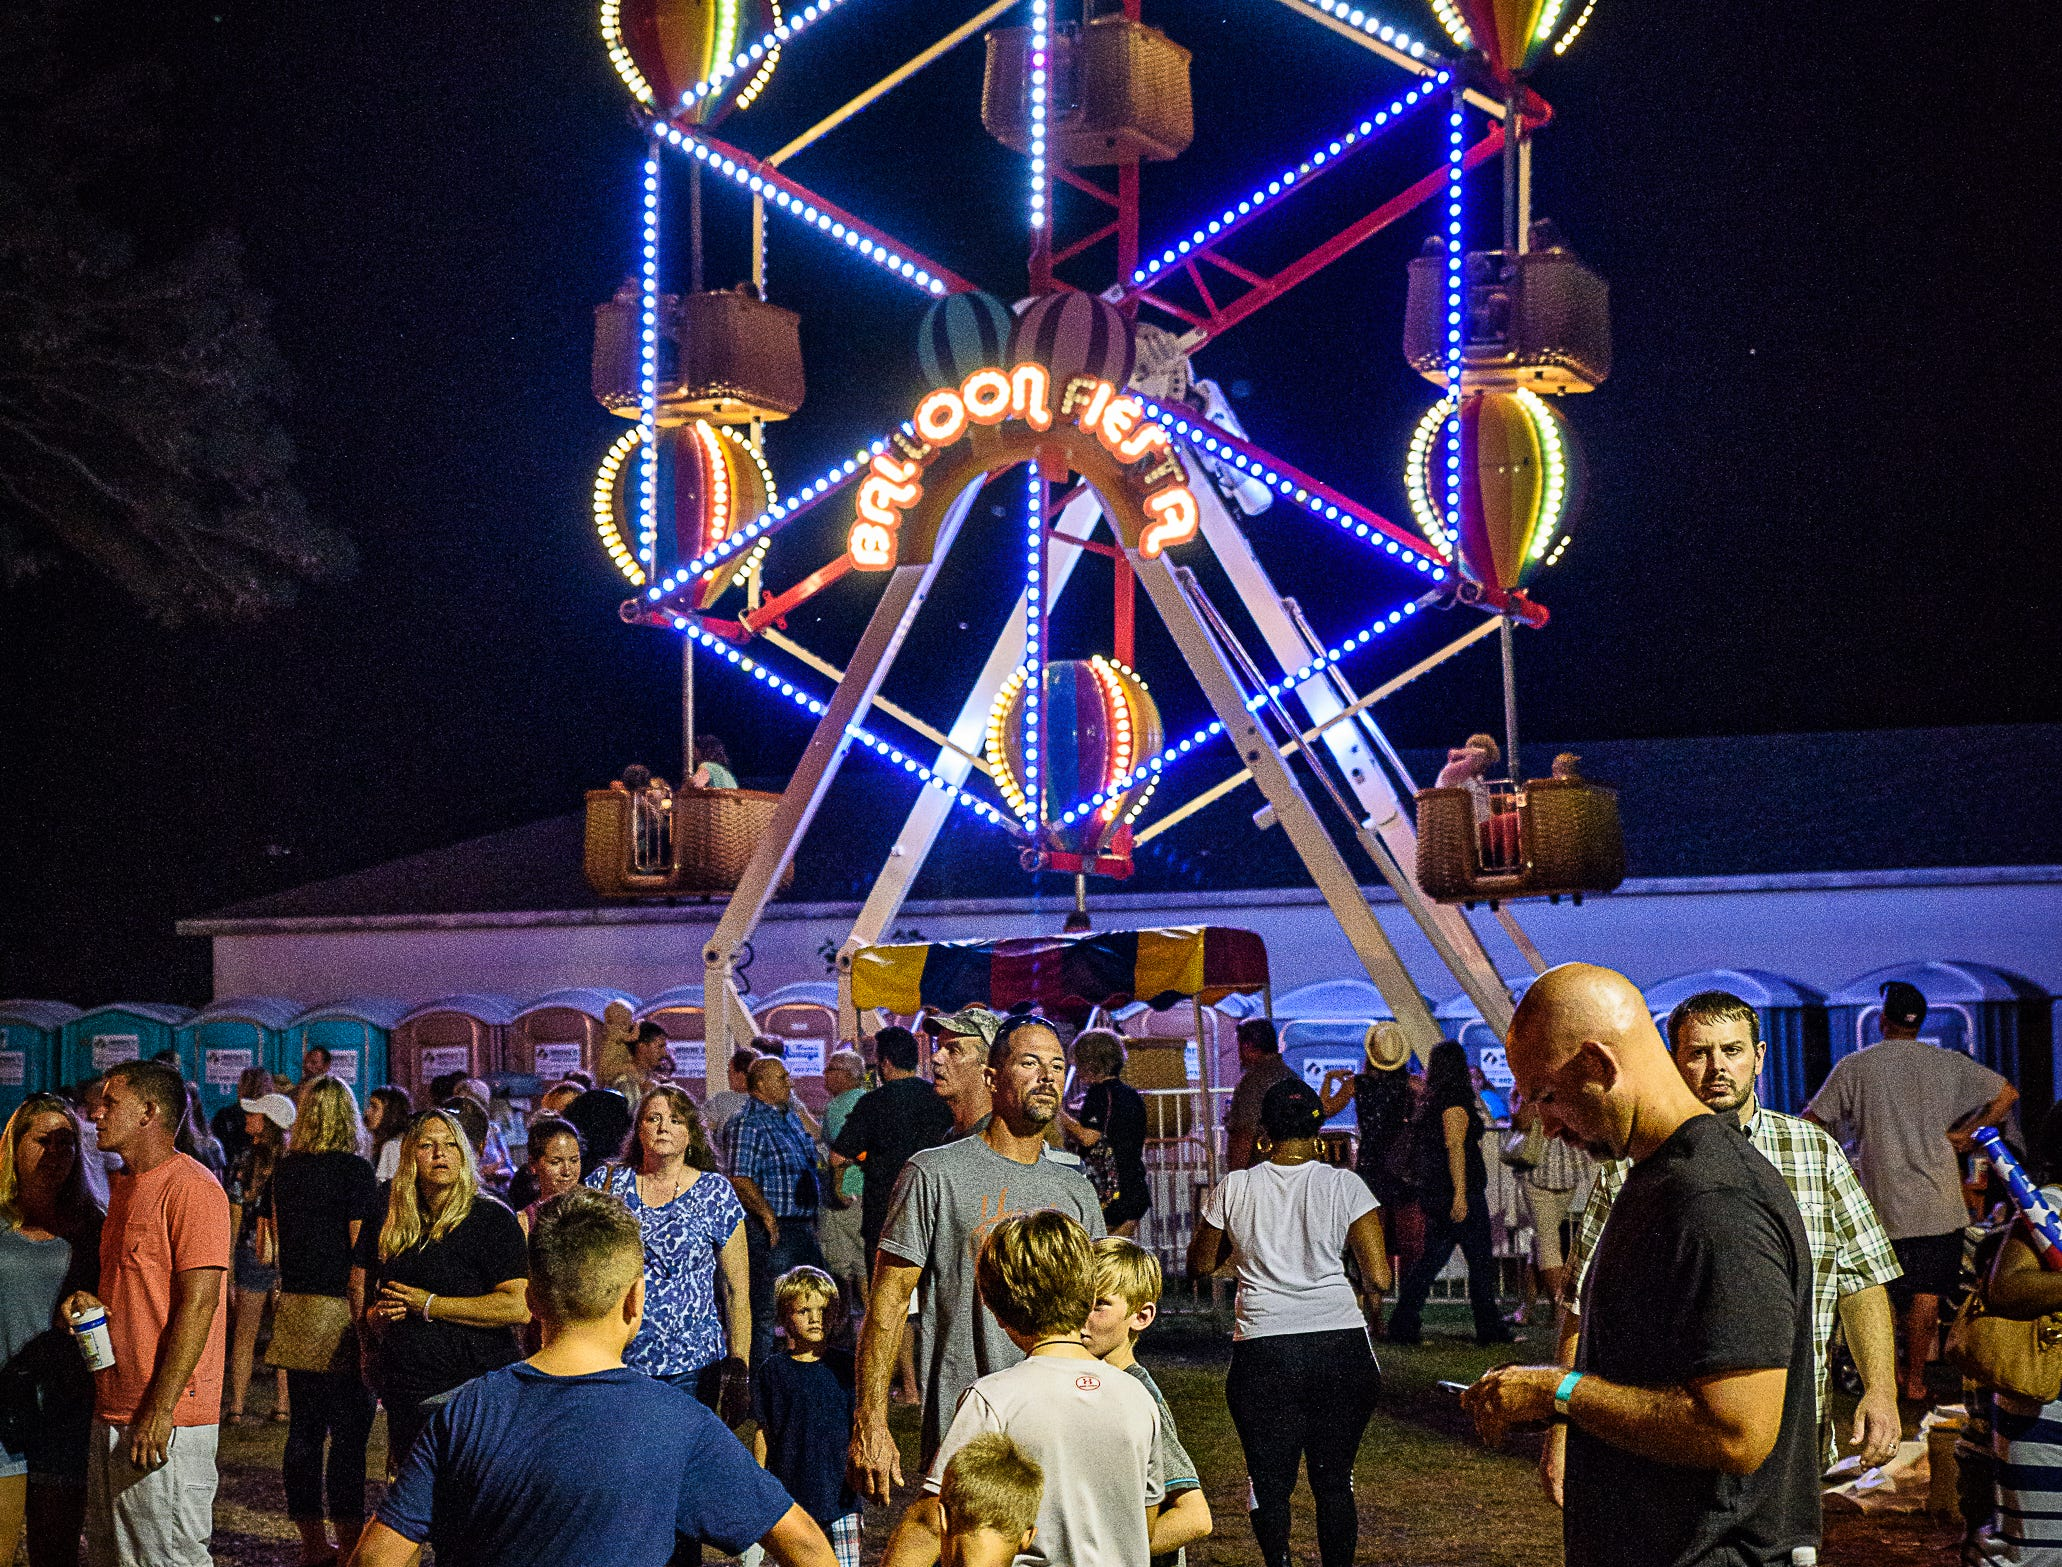 Carnival patrons line up for the Balloon Riesta Ferris Wheel at the Chincoteague Fireman's Carnival.